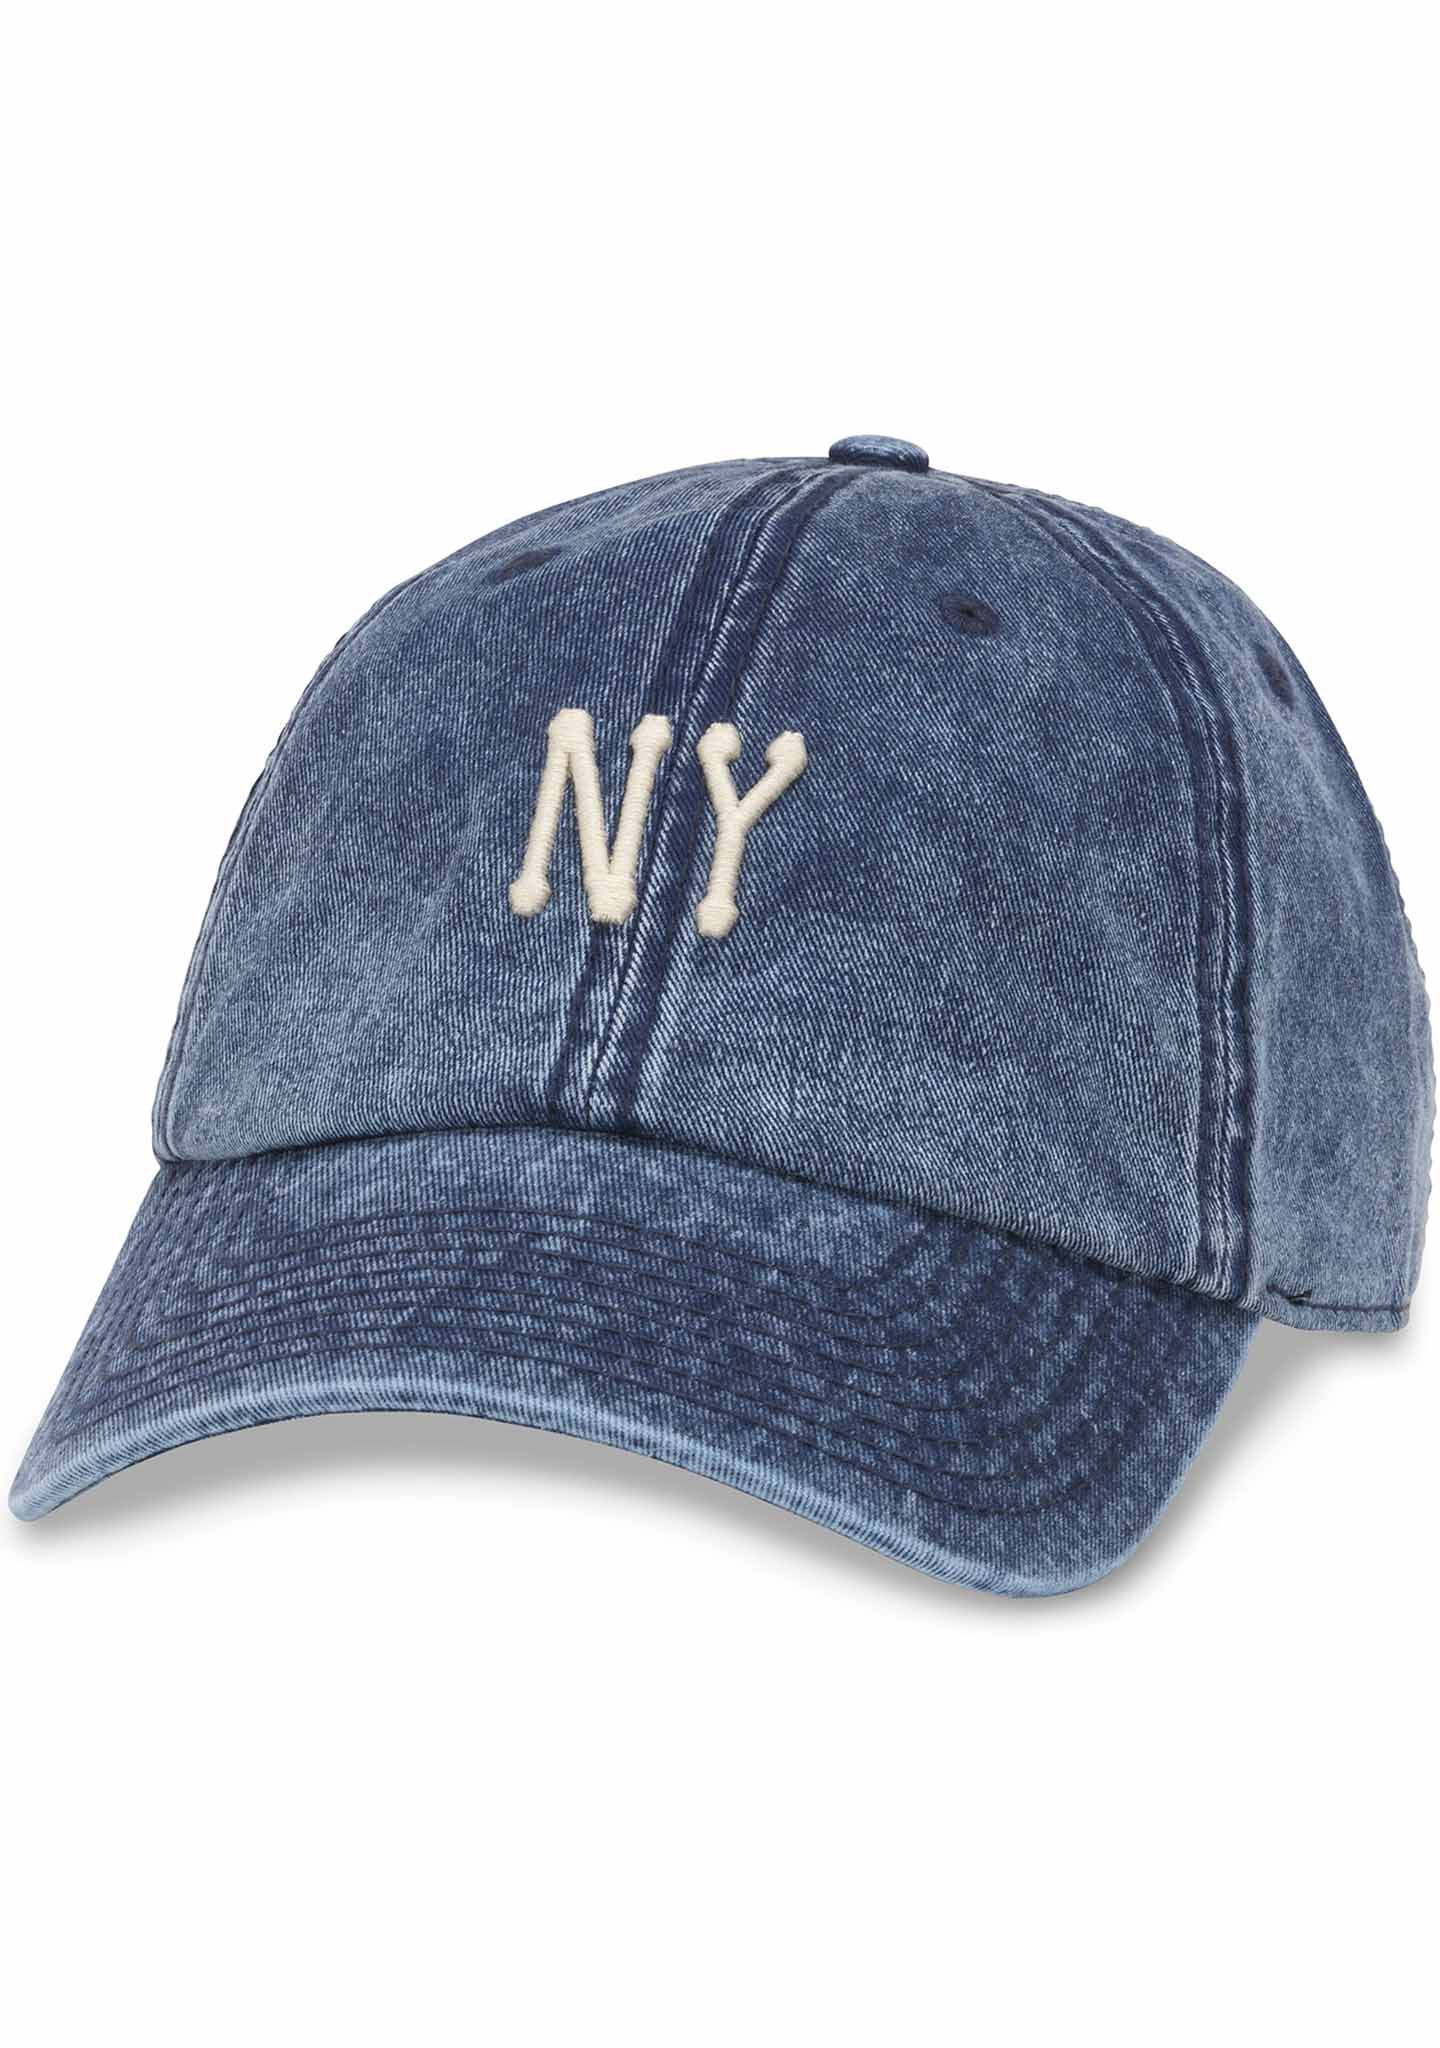 American Needle New York Elston Baseball Hat in Faded Navy Denim